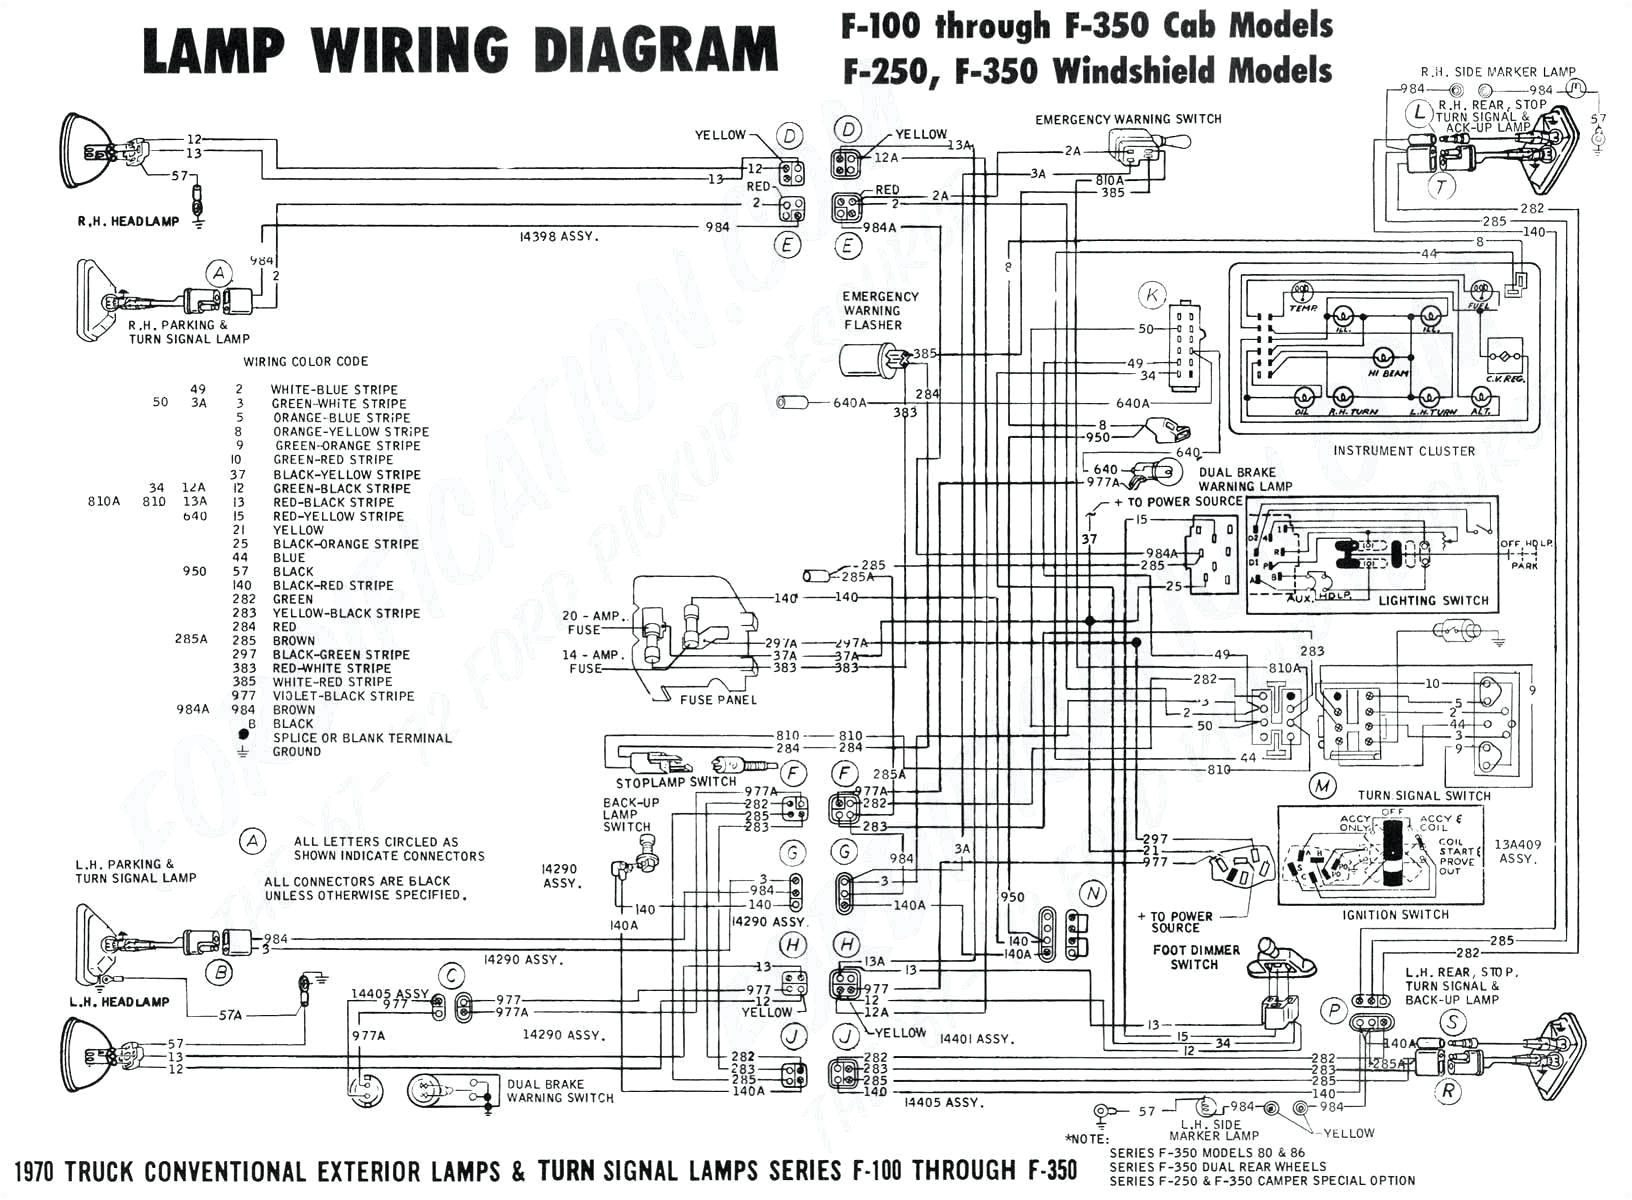 Ford Truck Wiring Diagrams 86 ford Truck Wiring Diagram Wiring Diagram Ame